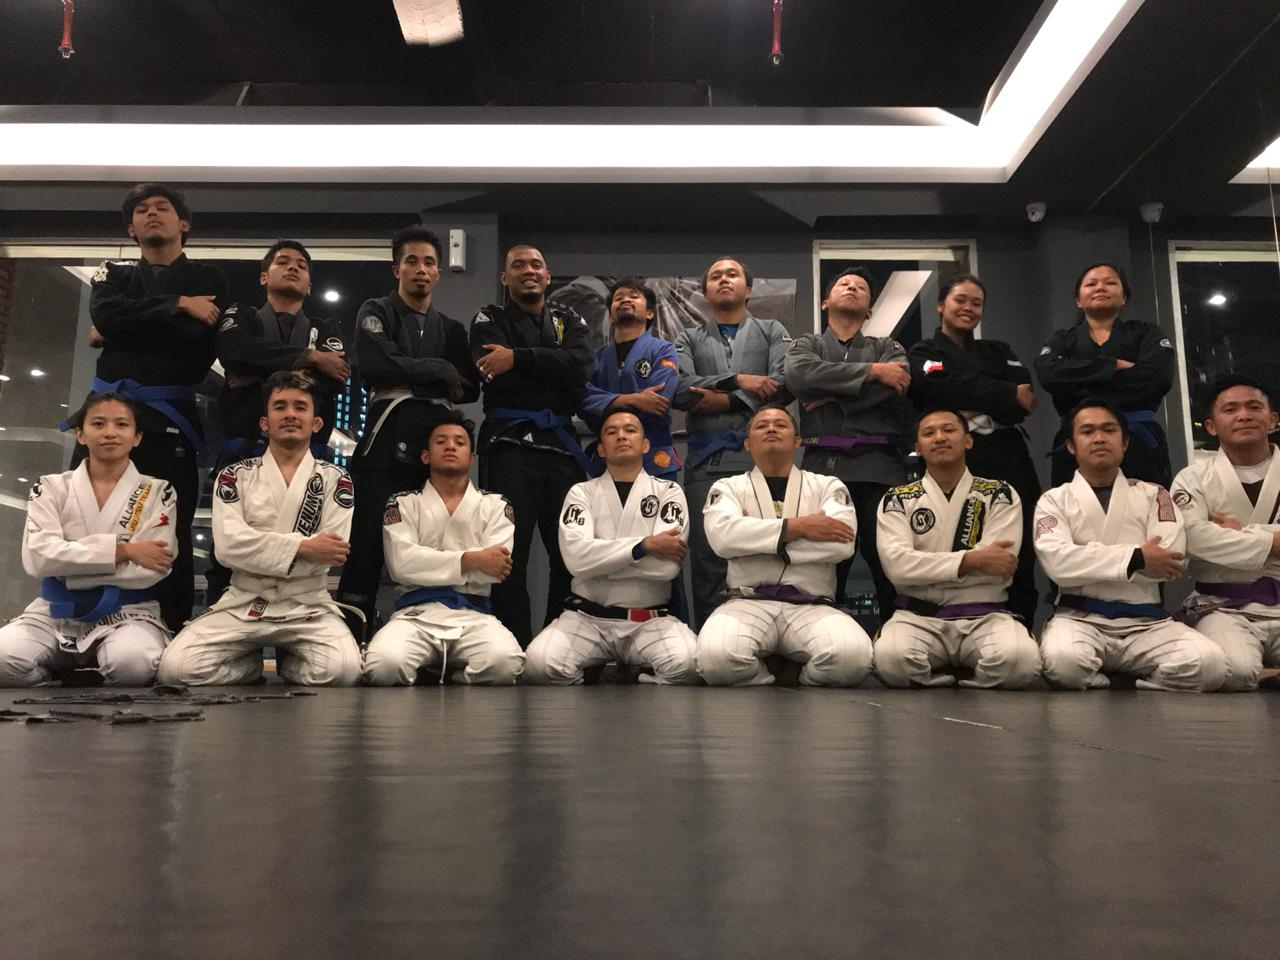 What a typical BJJ class is like